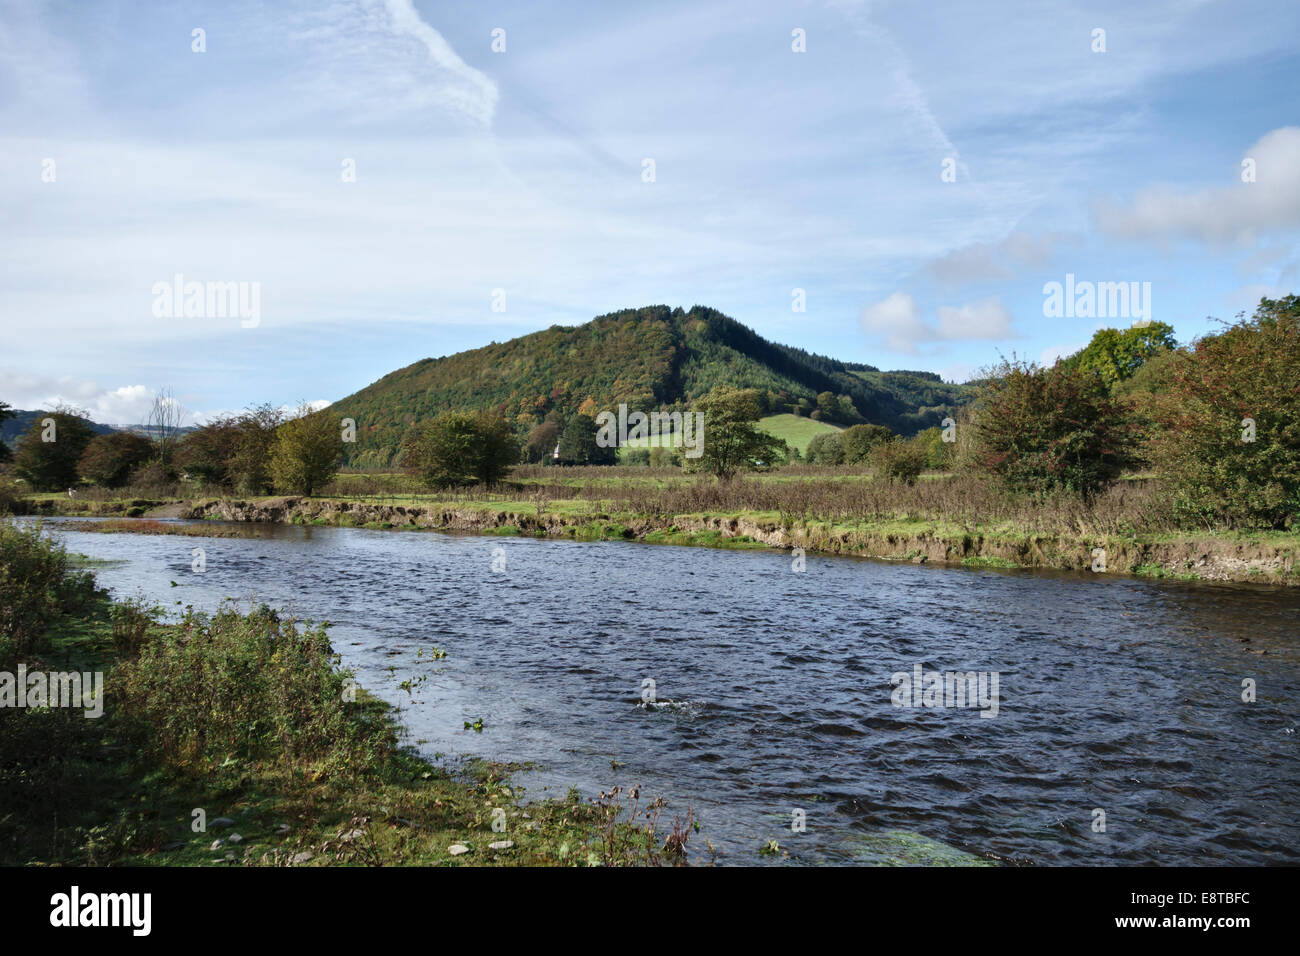 Knighton, Powys, Wales, UK. The River Teme is the boundary between Wales (Powys) and England (Shropshire) - Stock Image